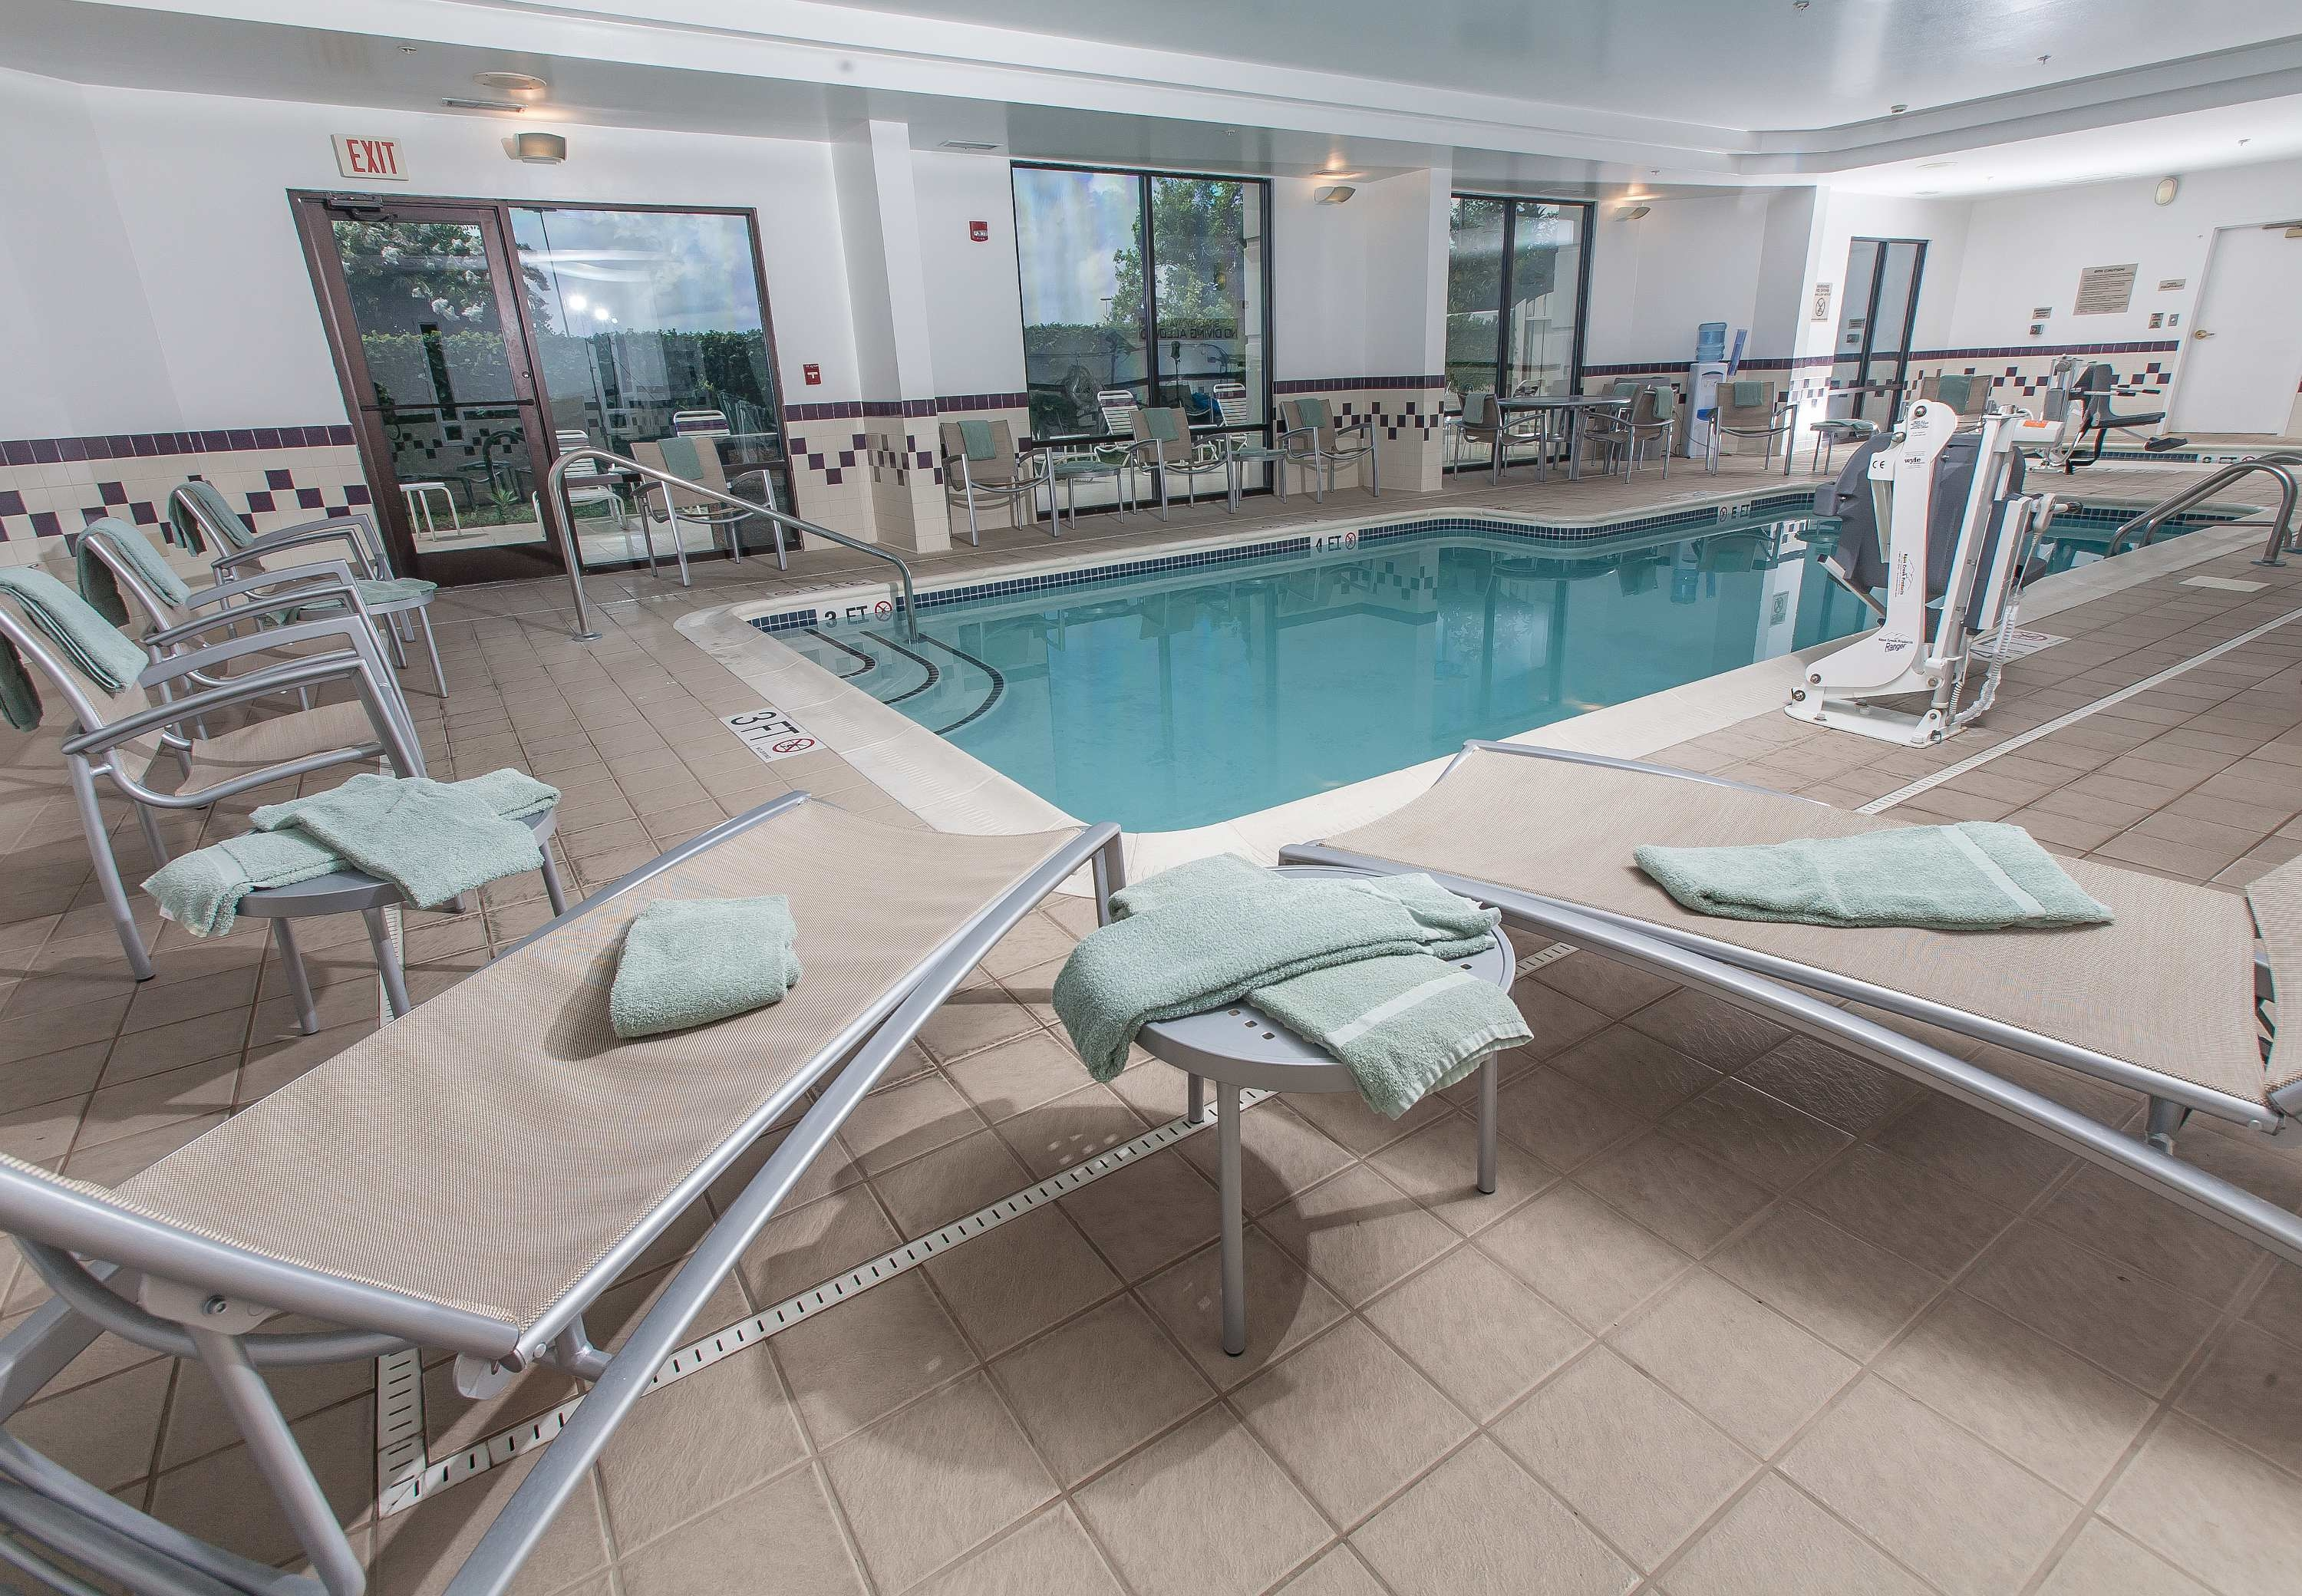 SpringHill Suites by Marriott Florence image 11